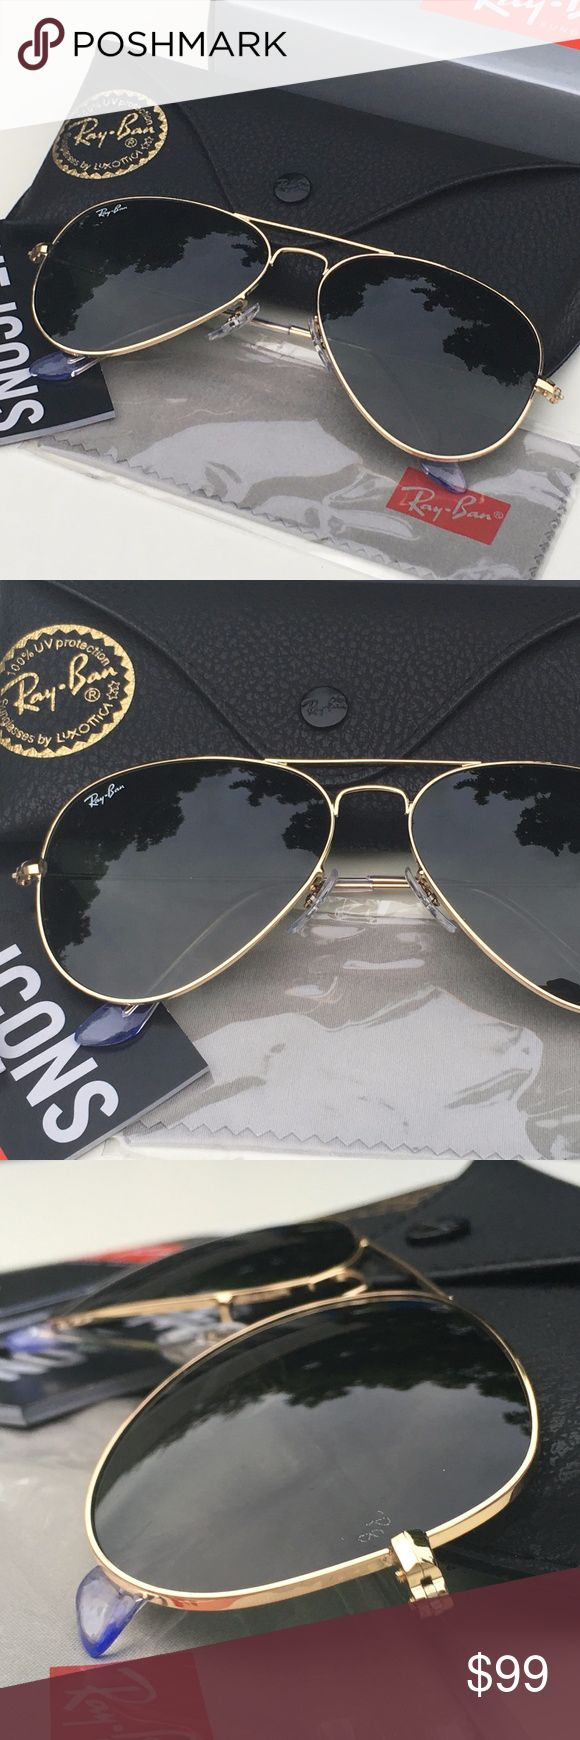 NWT RAY-BAN AVIATOR Sunglasses Green Classic/Gold 100% AUTHENTIC & BRAND NEW  Original RAY-BAN AVIATOR Sunglasses Green Classic - Gold Frame Model: RB3025 - L0205 (58mm)  -----------------------------------------------------------------  Product Description: Brand: Ray-Ban (100% Authentic) Lens Color: Blue Flash Frame Color: Gold Model: RB3025 Color Code: L0205 Size: 58mm/14/3N Gender: Unisex Made: Italy  Package Includes:  - Ray-Ban Outer Paper Box - Ray-Ban Carrying Case - Ray-Ban Cleaning…